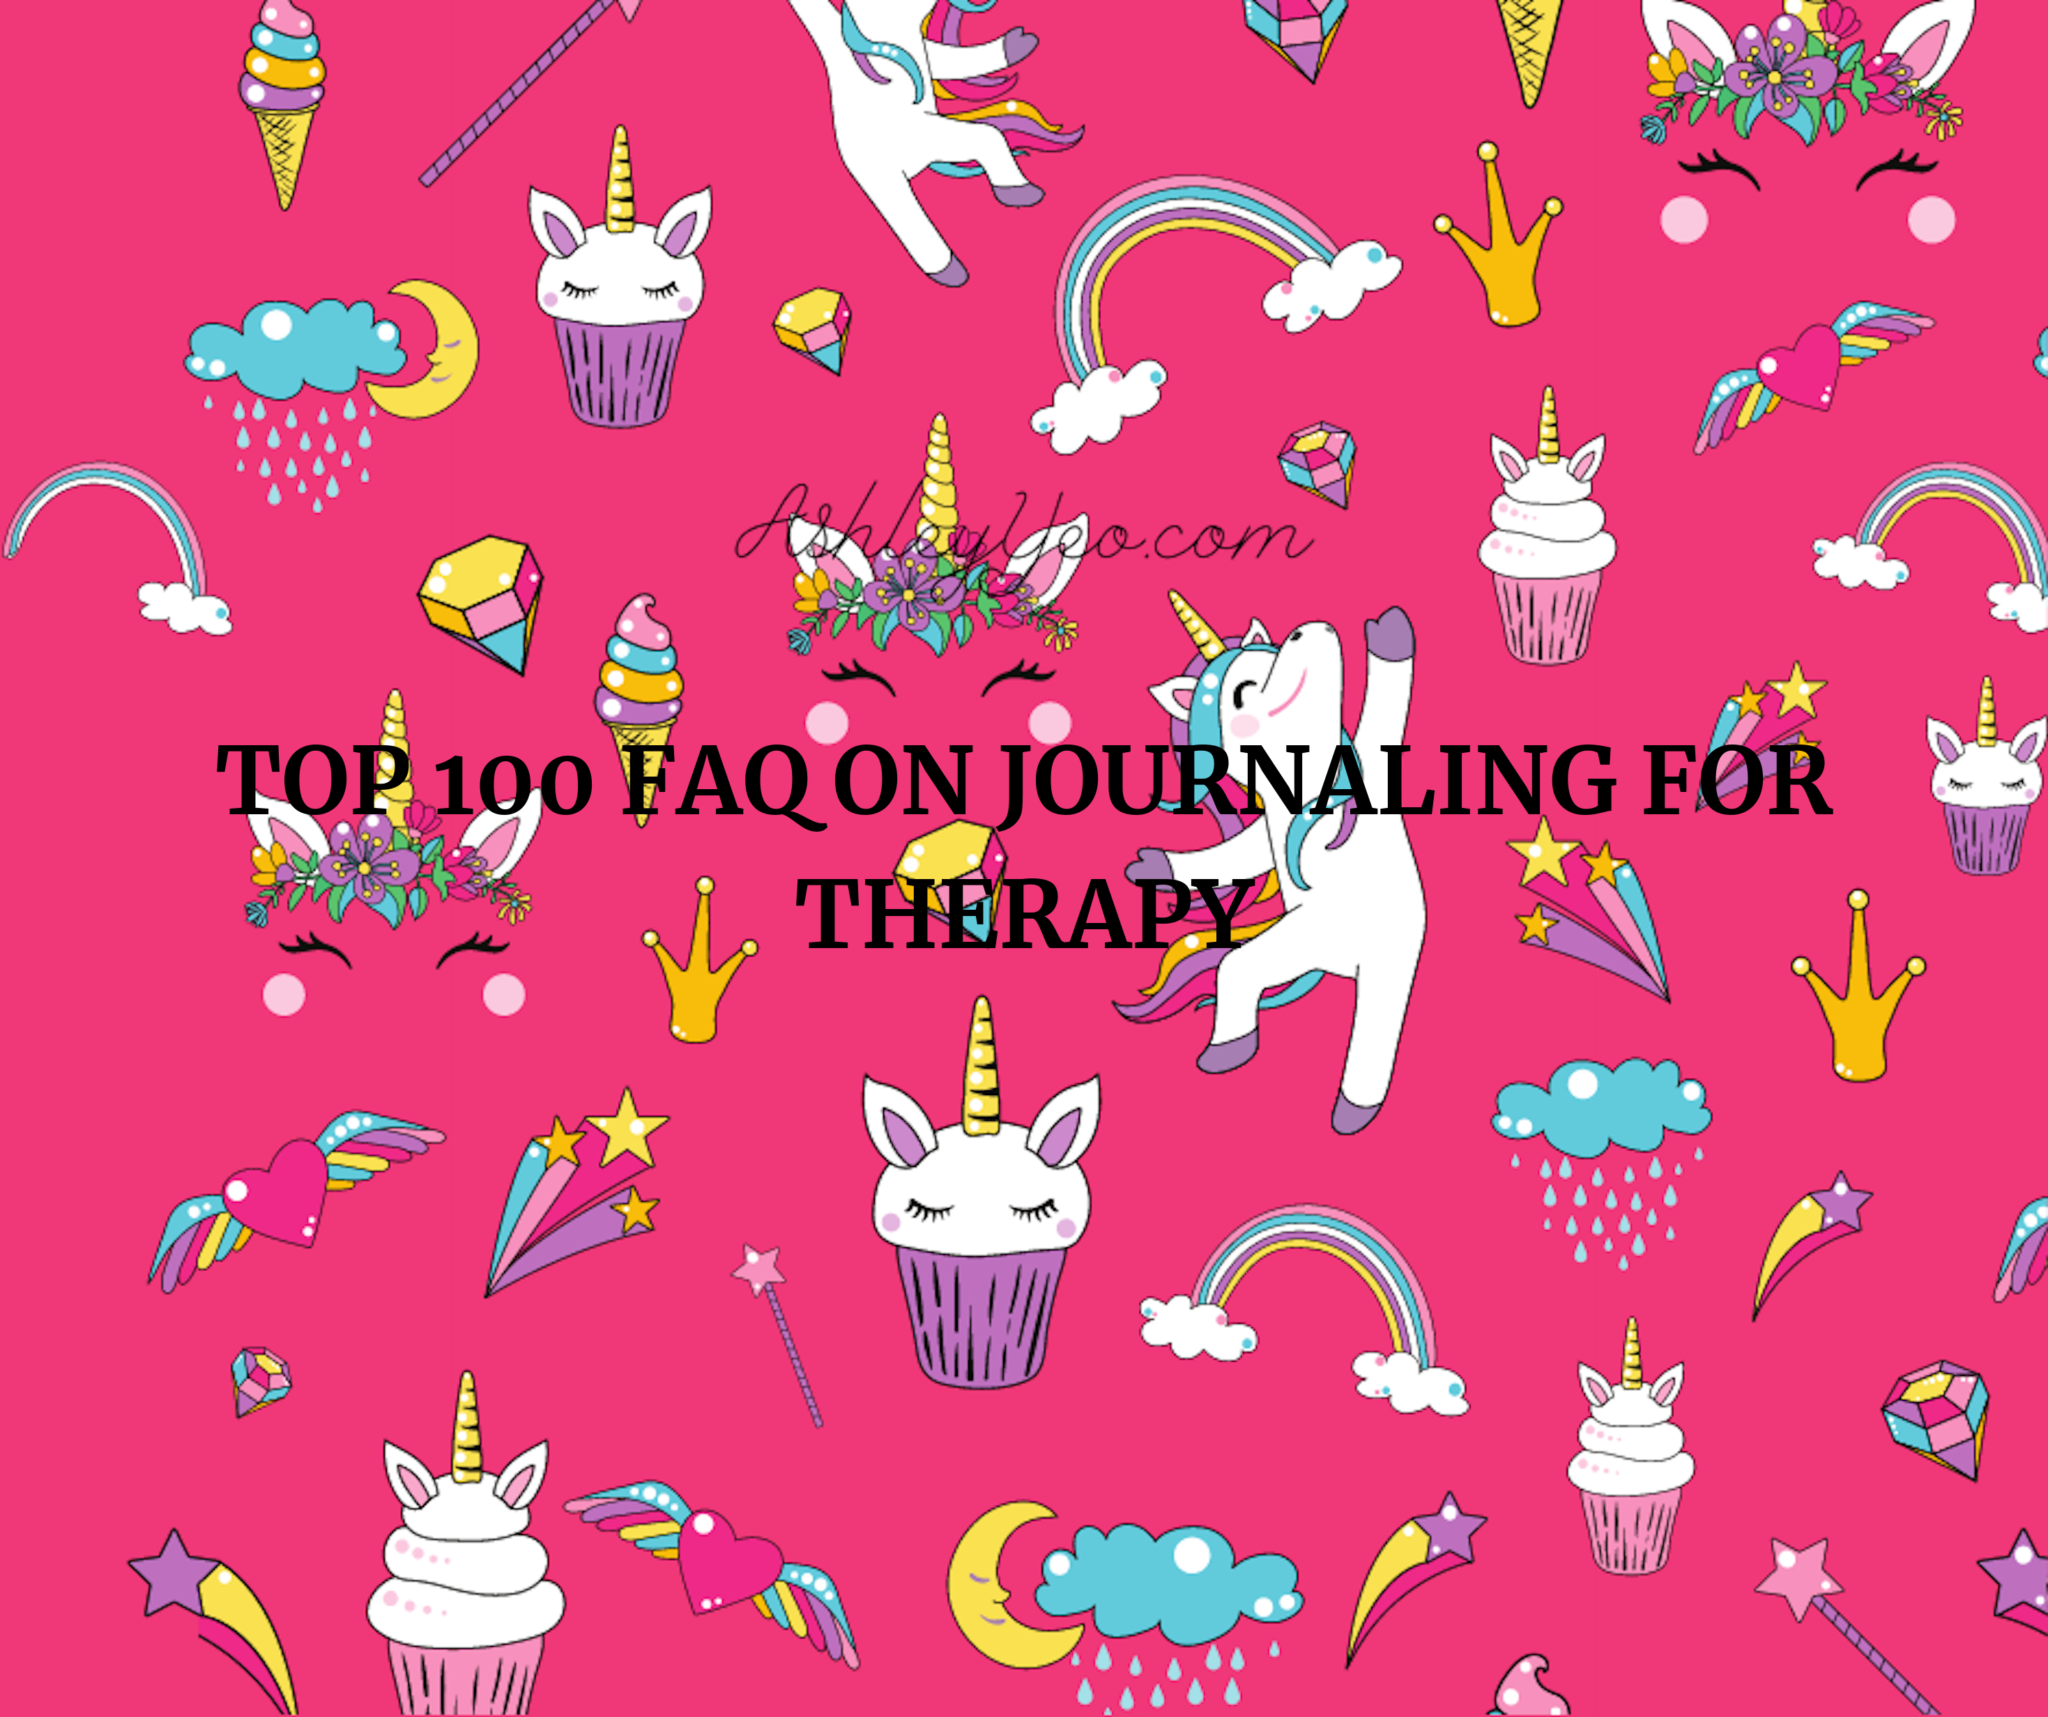 Journaling for Therapy Top 100 FAQ